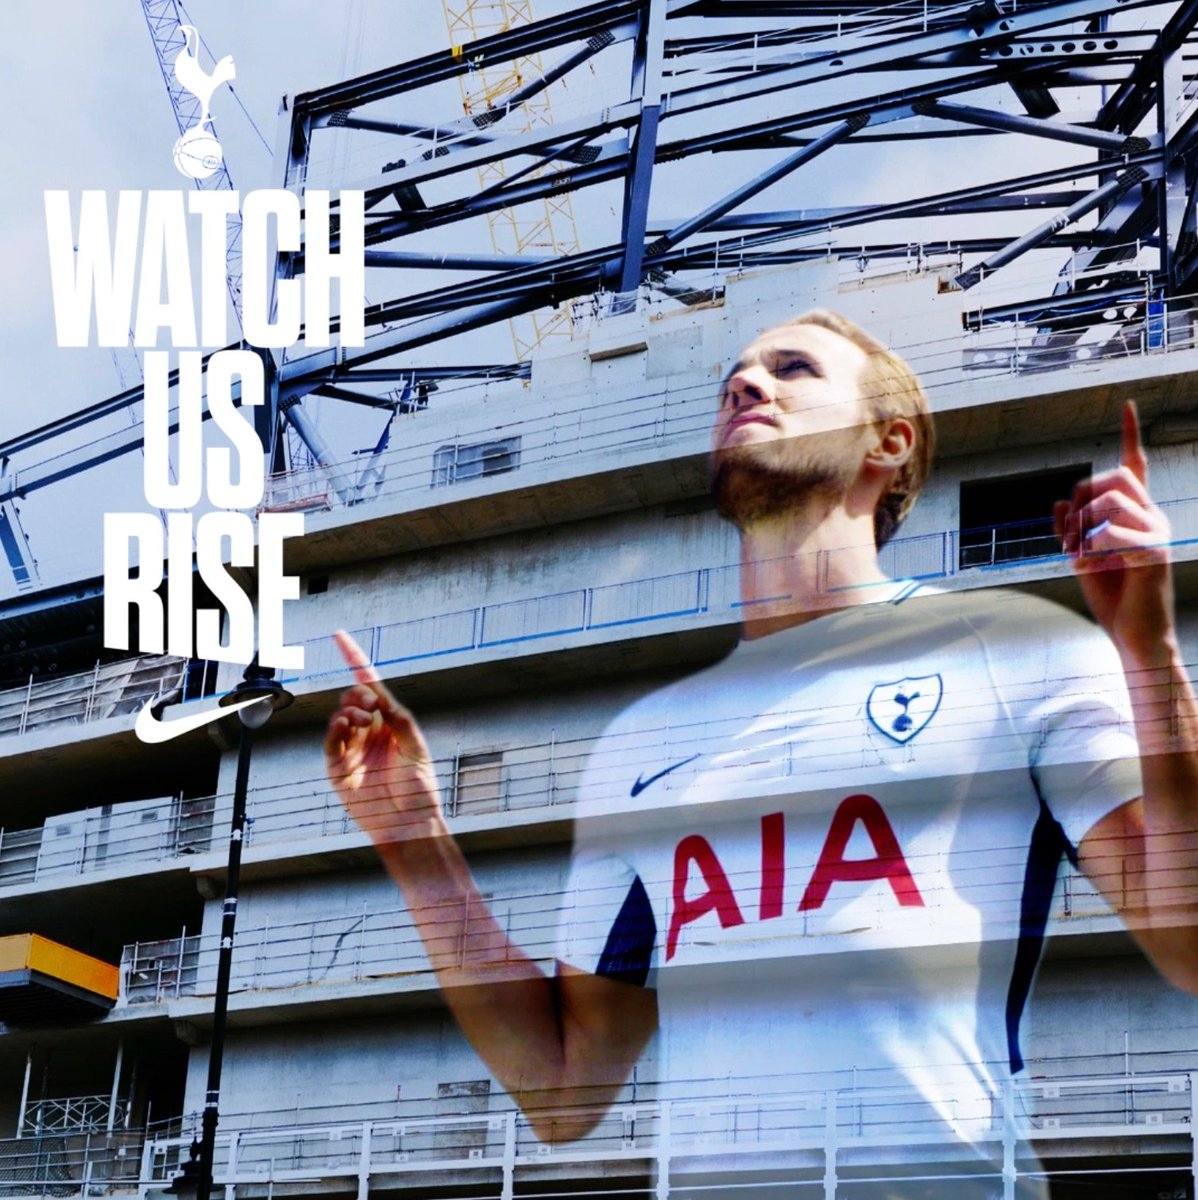 #WatchUsRise #COYS Check out the new @NikeUK kits: https://t.co/RiYRelZgCN